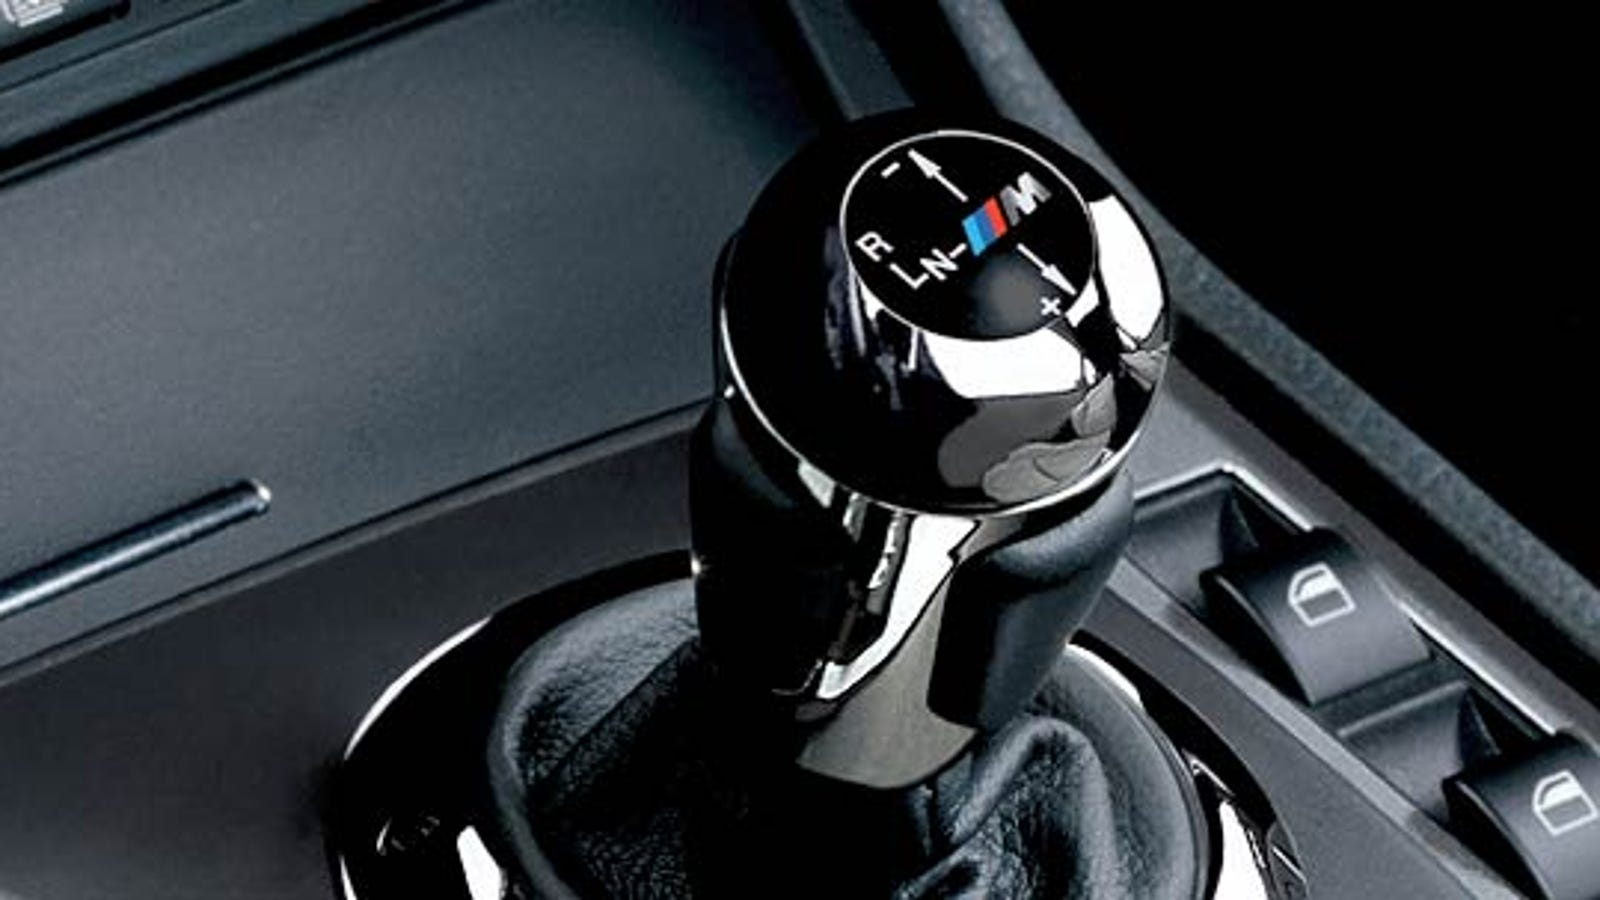 bmw car how many gears how many gears is enoughbmw steptronic transmissionbest of both worlds. Black Bedroom Furniture Sets. Home Design Ideas